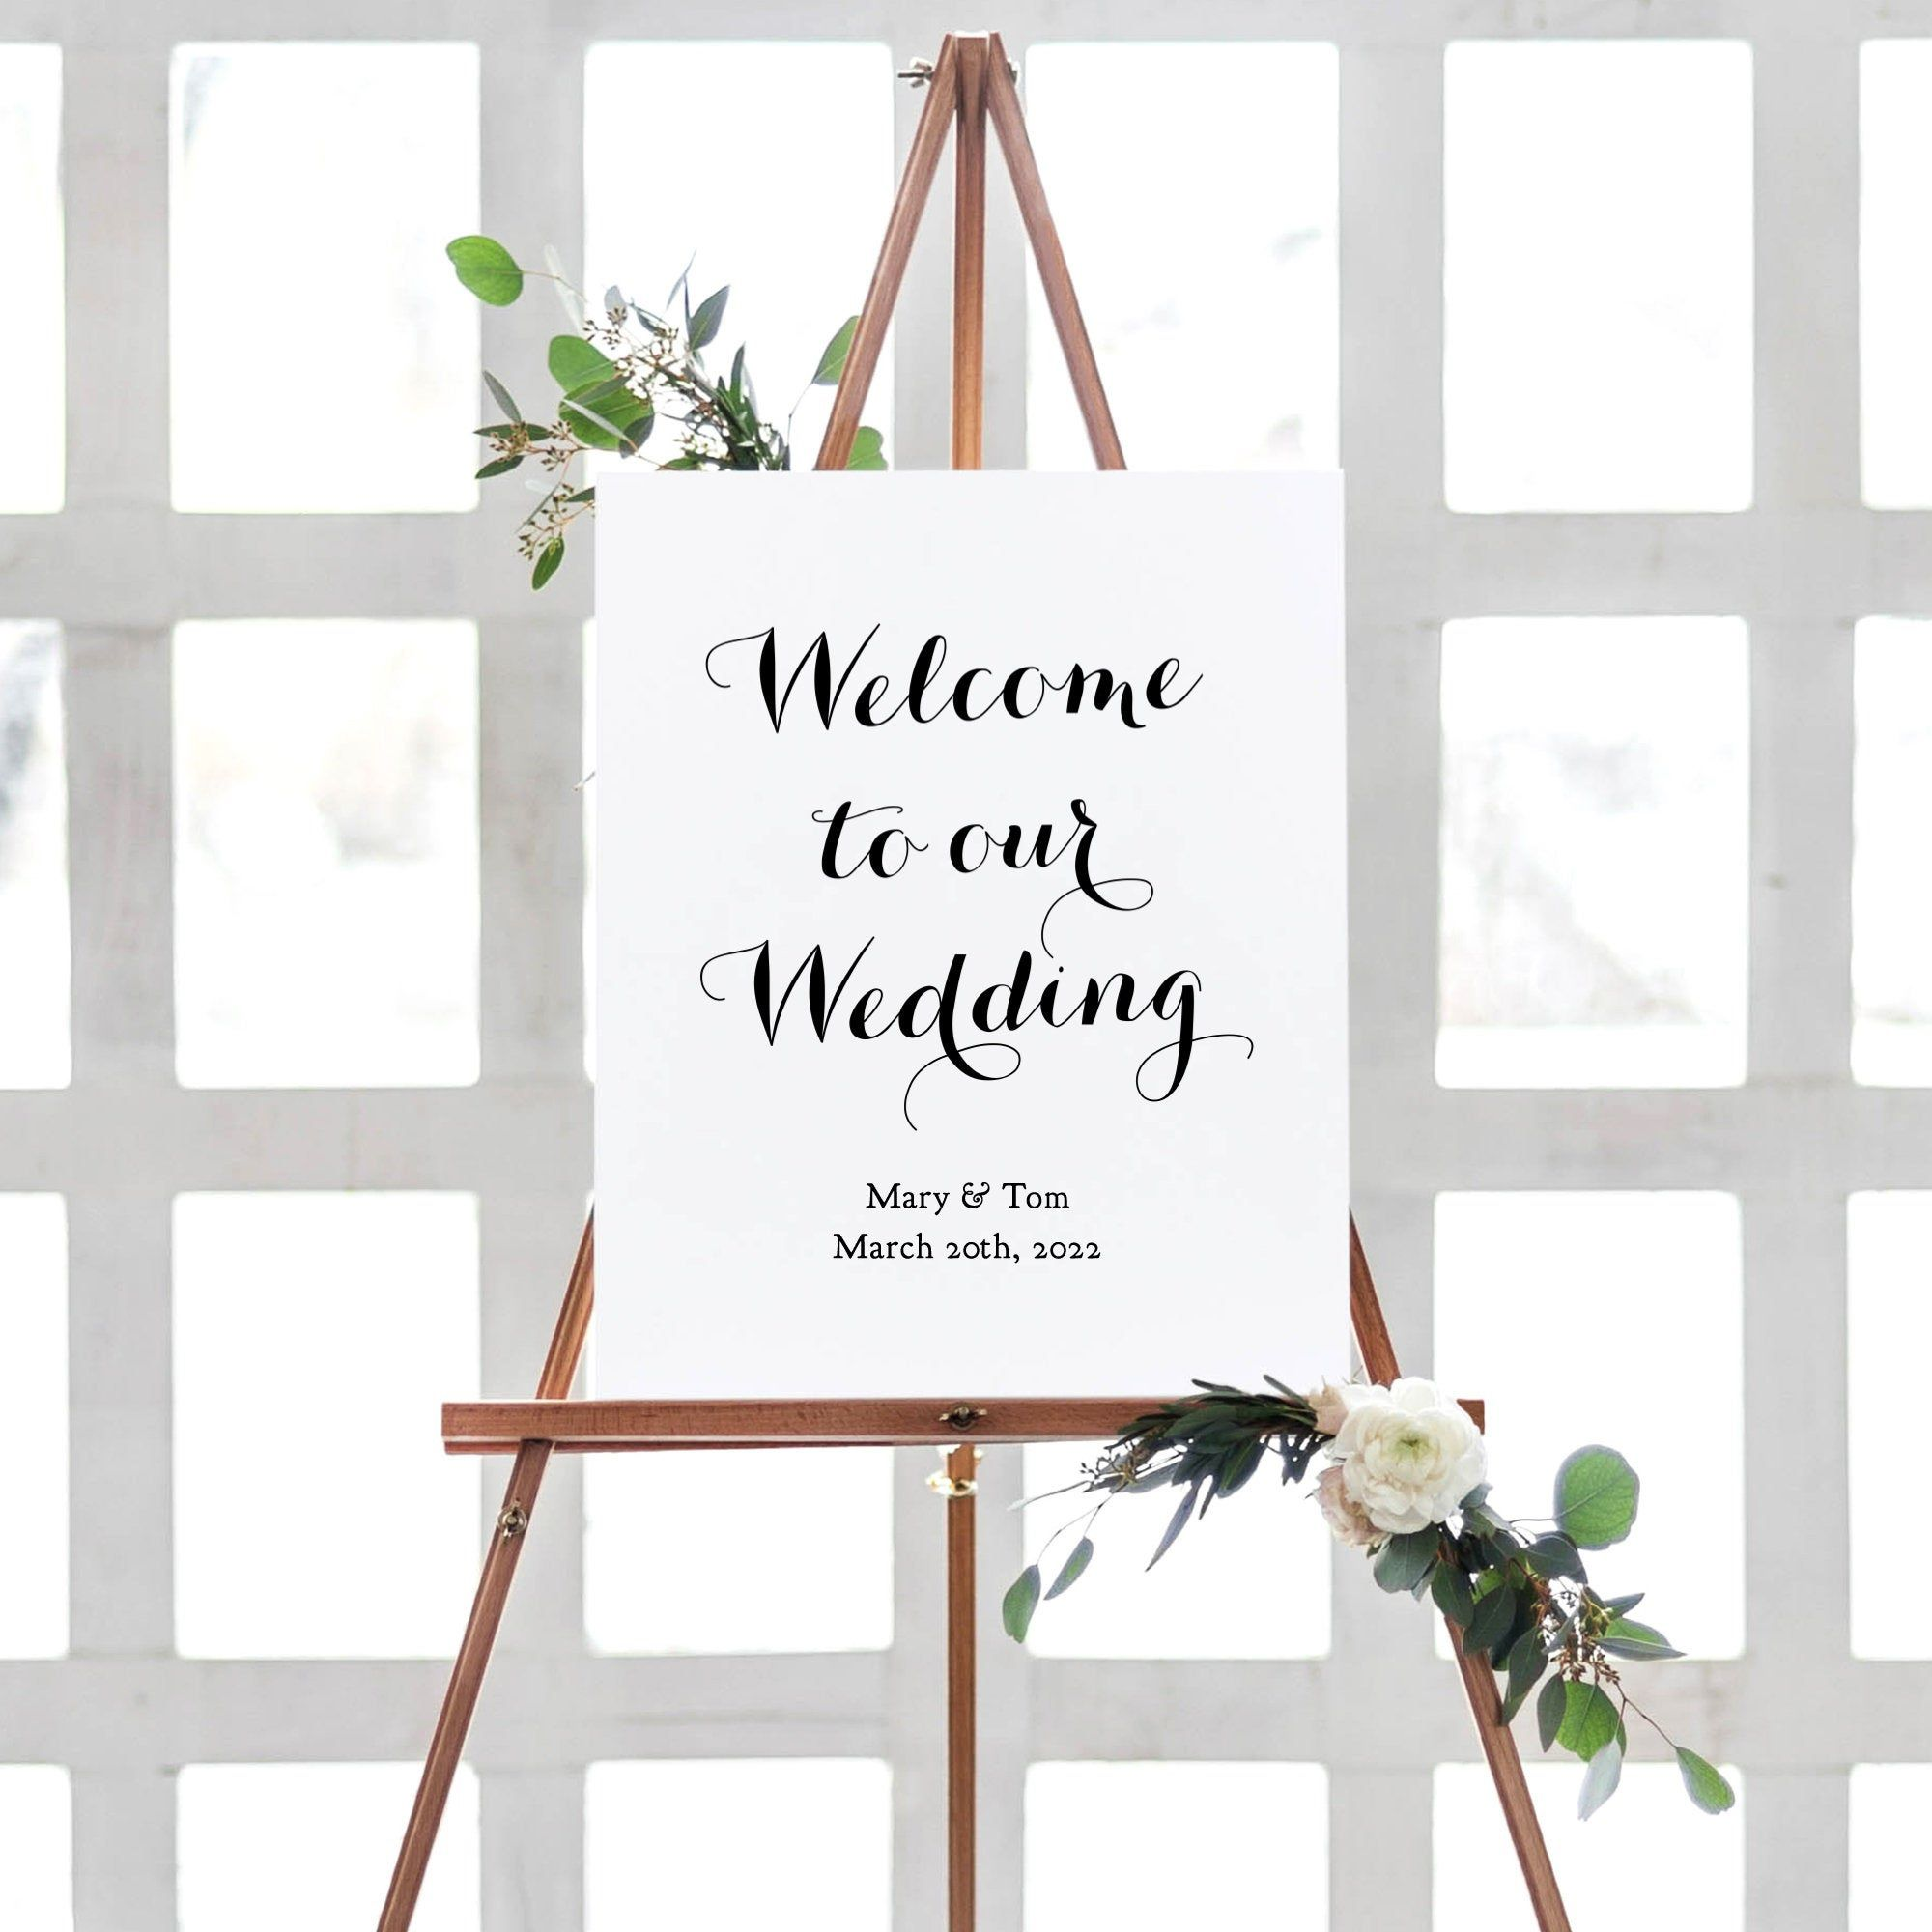 011 Unforgettable Wedding Welcome Sign Template Free Highest Clarity Full